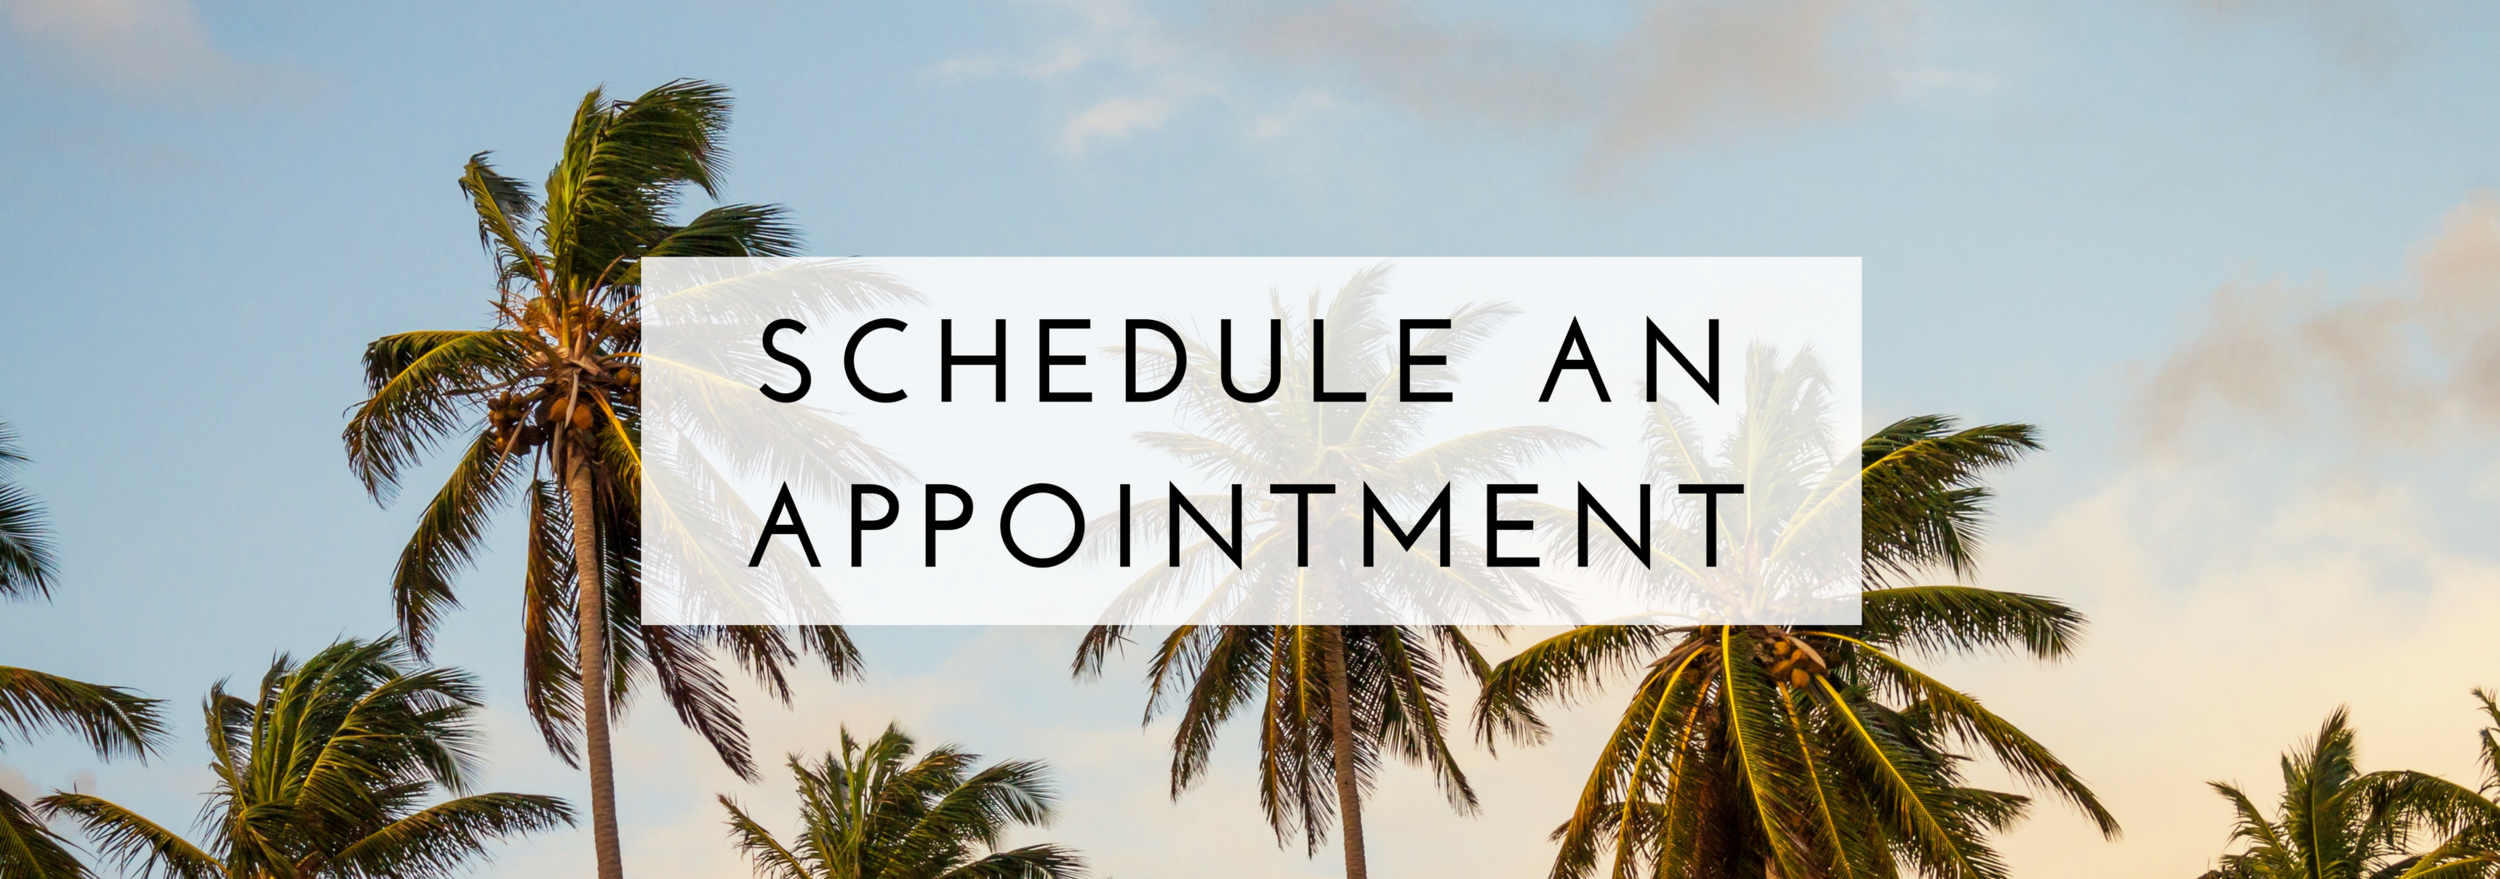 SCHEDULEANAPPOINTMENT.png